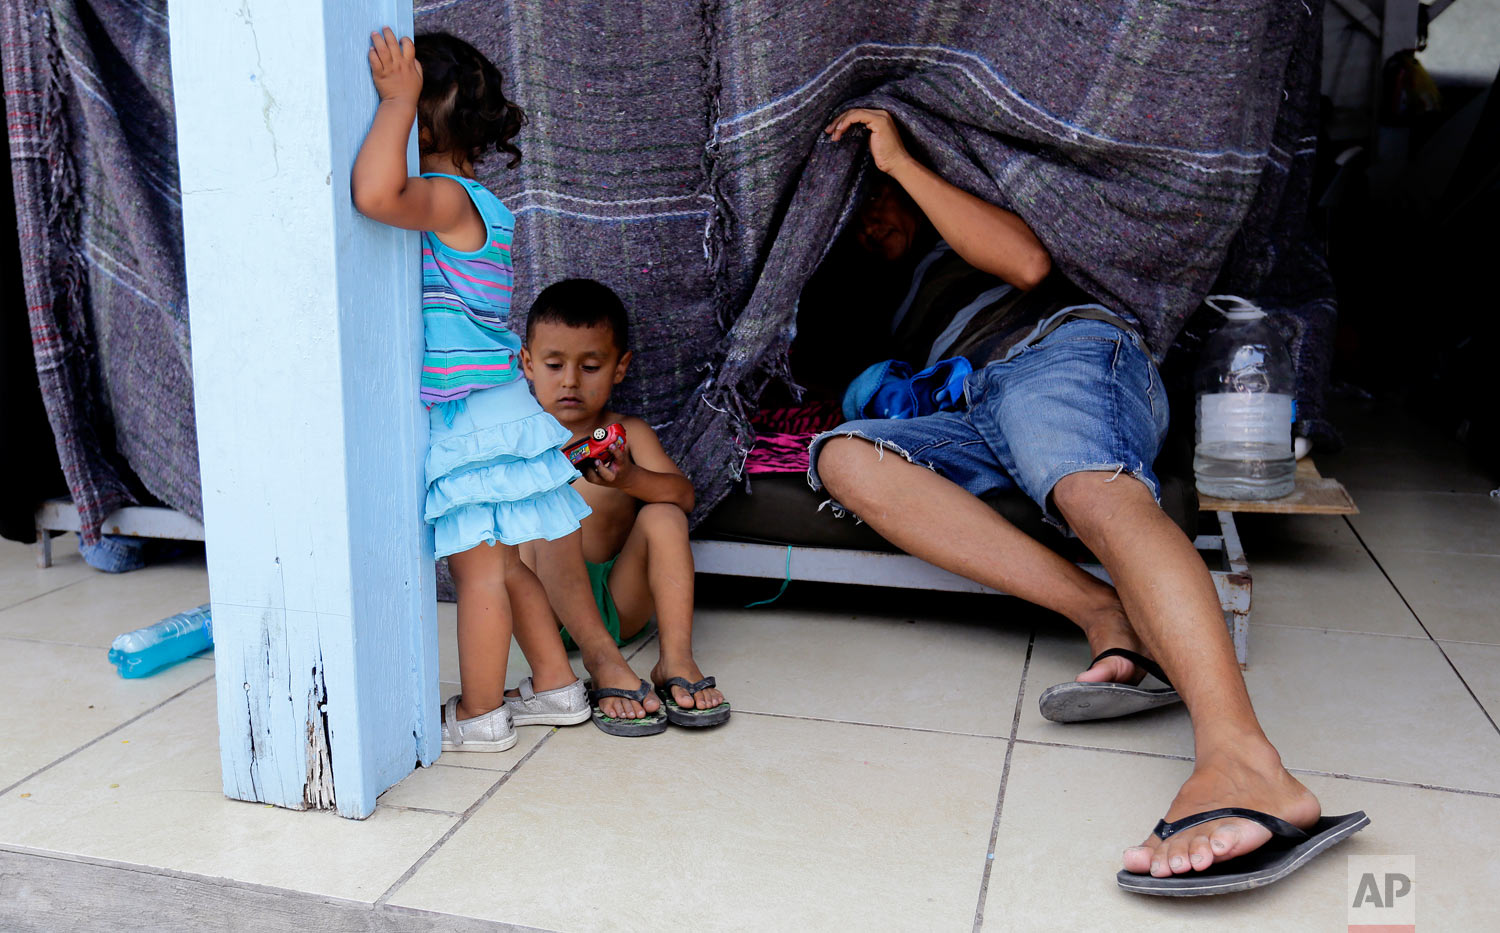 Migrants seeking asylum in the United States wait at a shelter in Reynosa, Mexico, May 1, 2019. (AP Photo/Eric Gay)